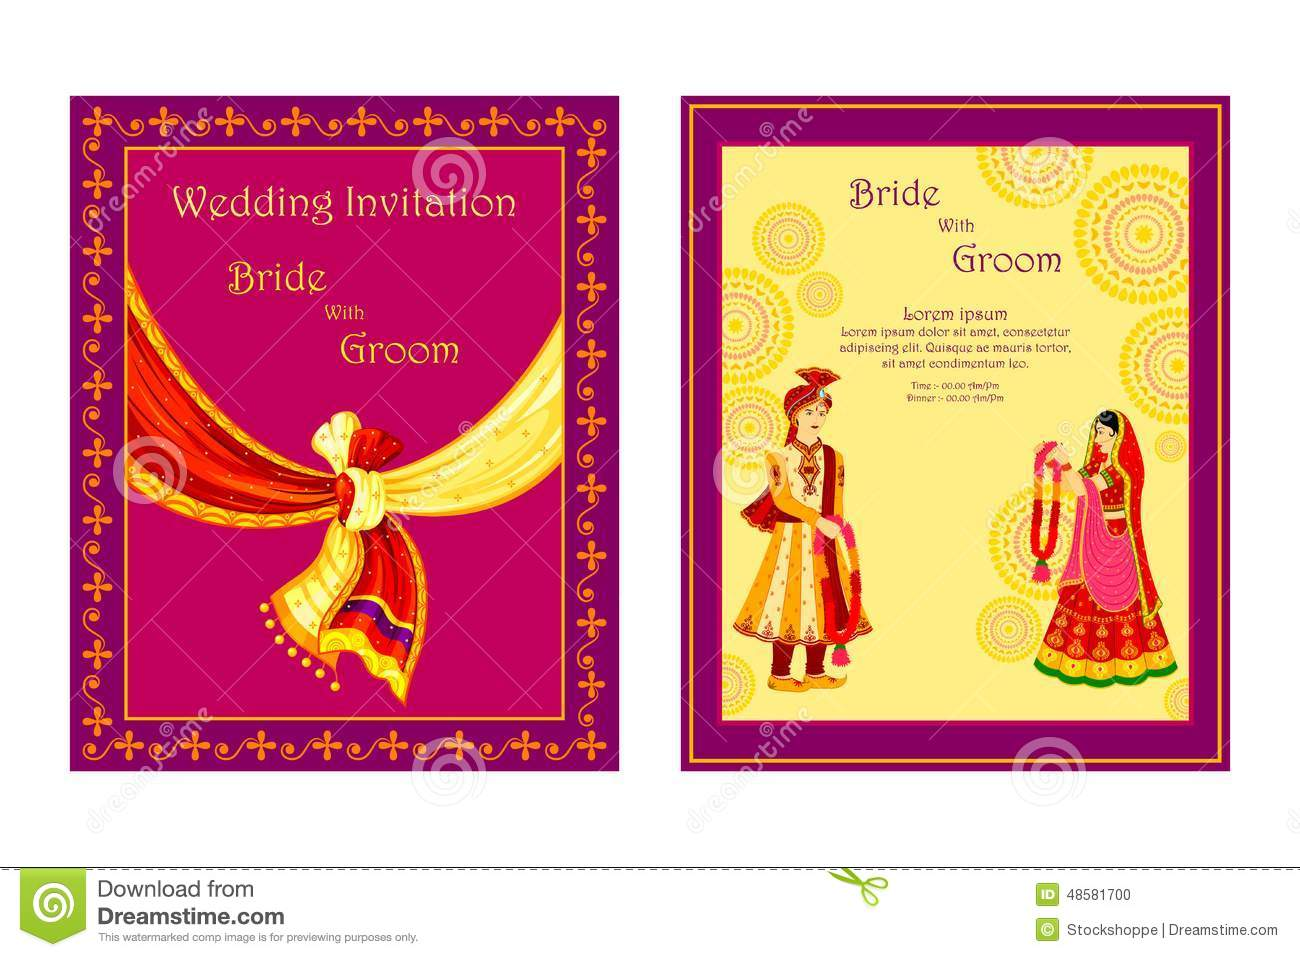 Download Indian Wedding Invitation Card Stock Vector   Illustration Of  Greeting, Concept: 48581700. Download Comp